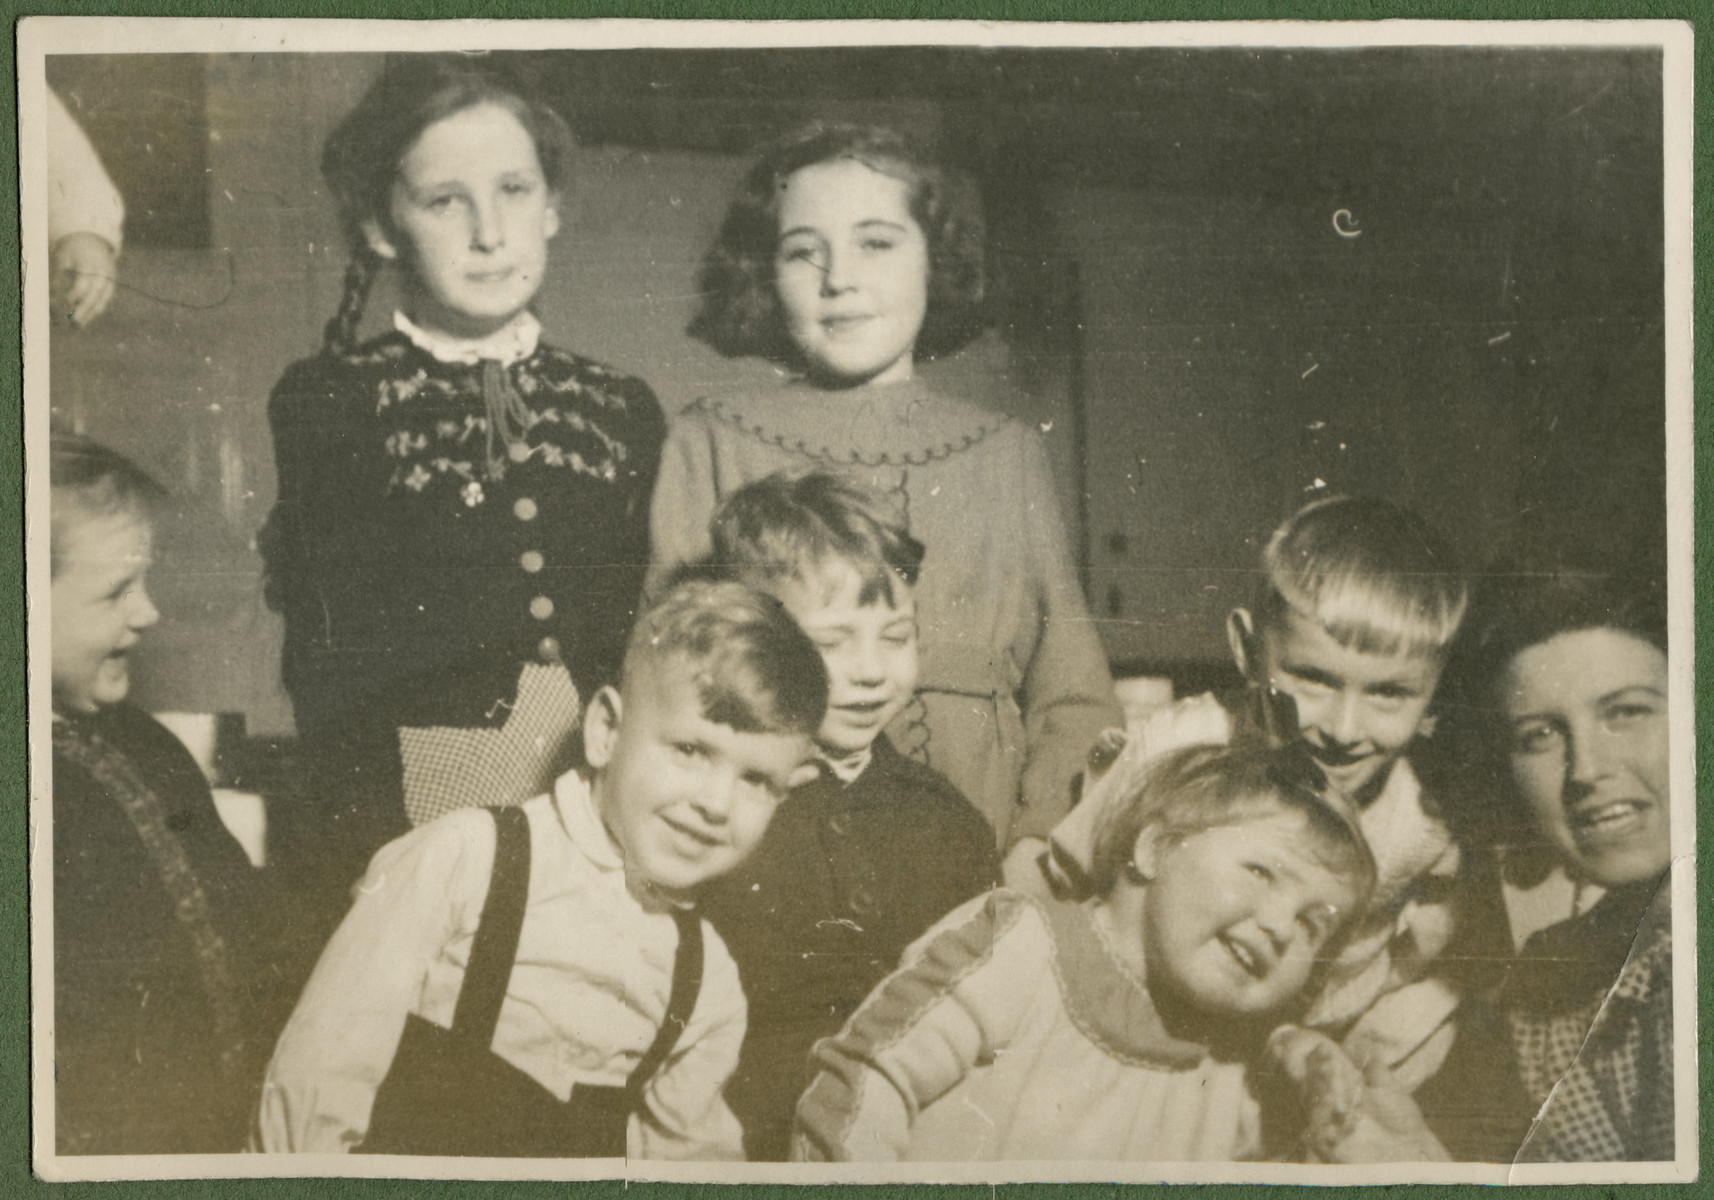 Group portrait of young children in the Lueneburg displaced persons center.